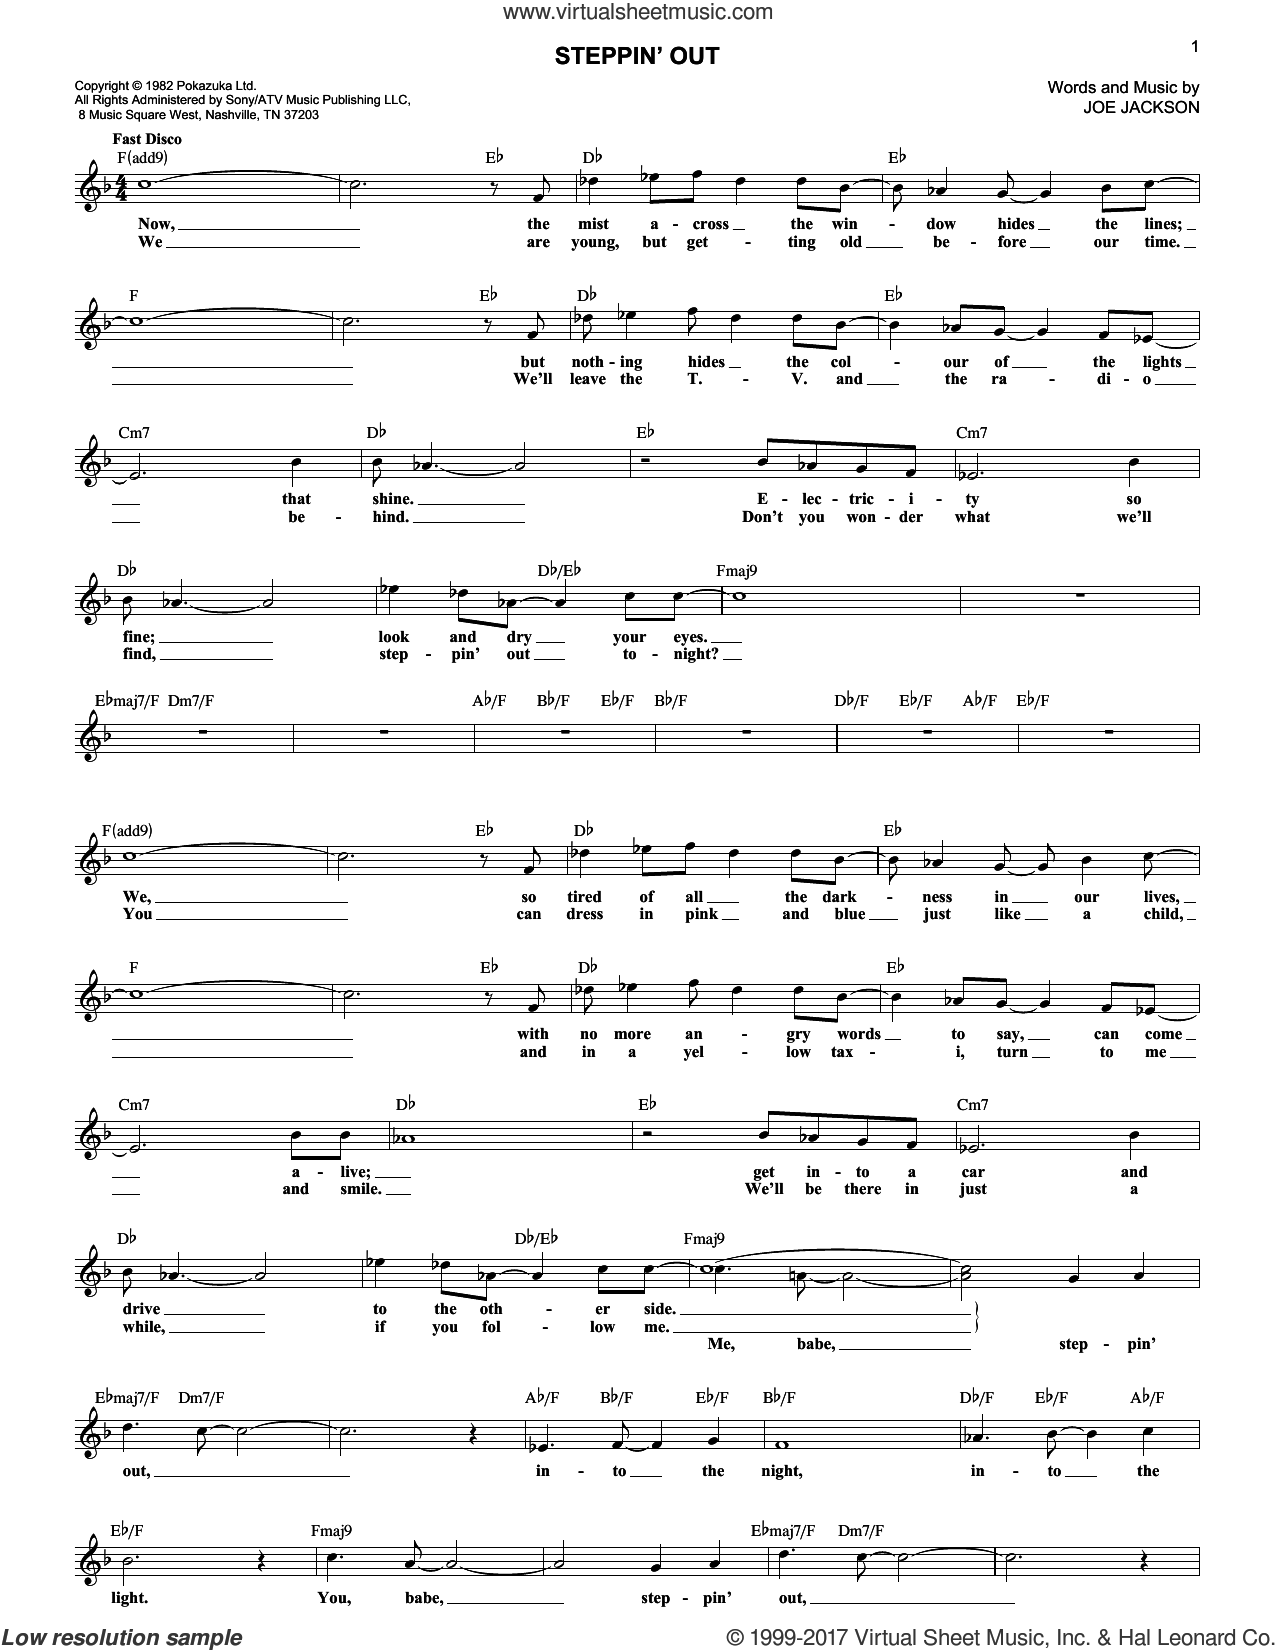 Steppin' Out sheet music for voice and other instruments (fake book) by Joe Jackson, intermediate skill level